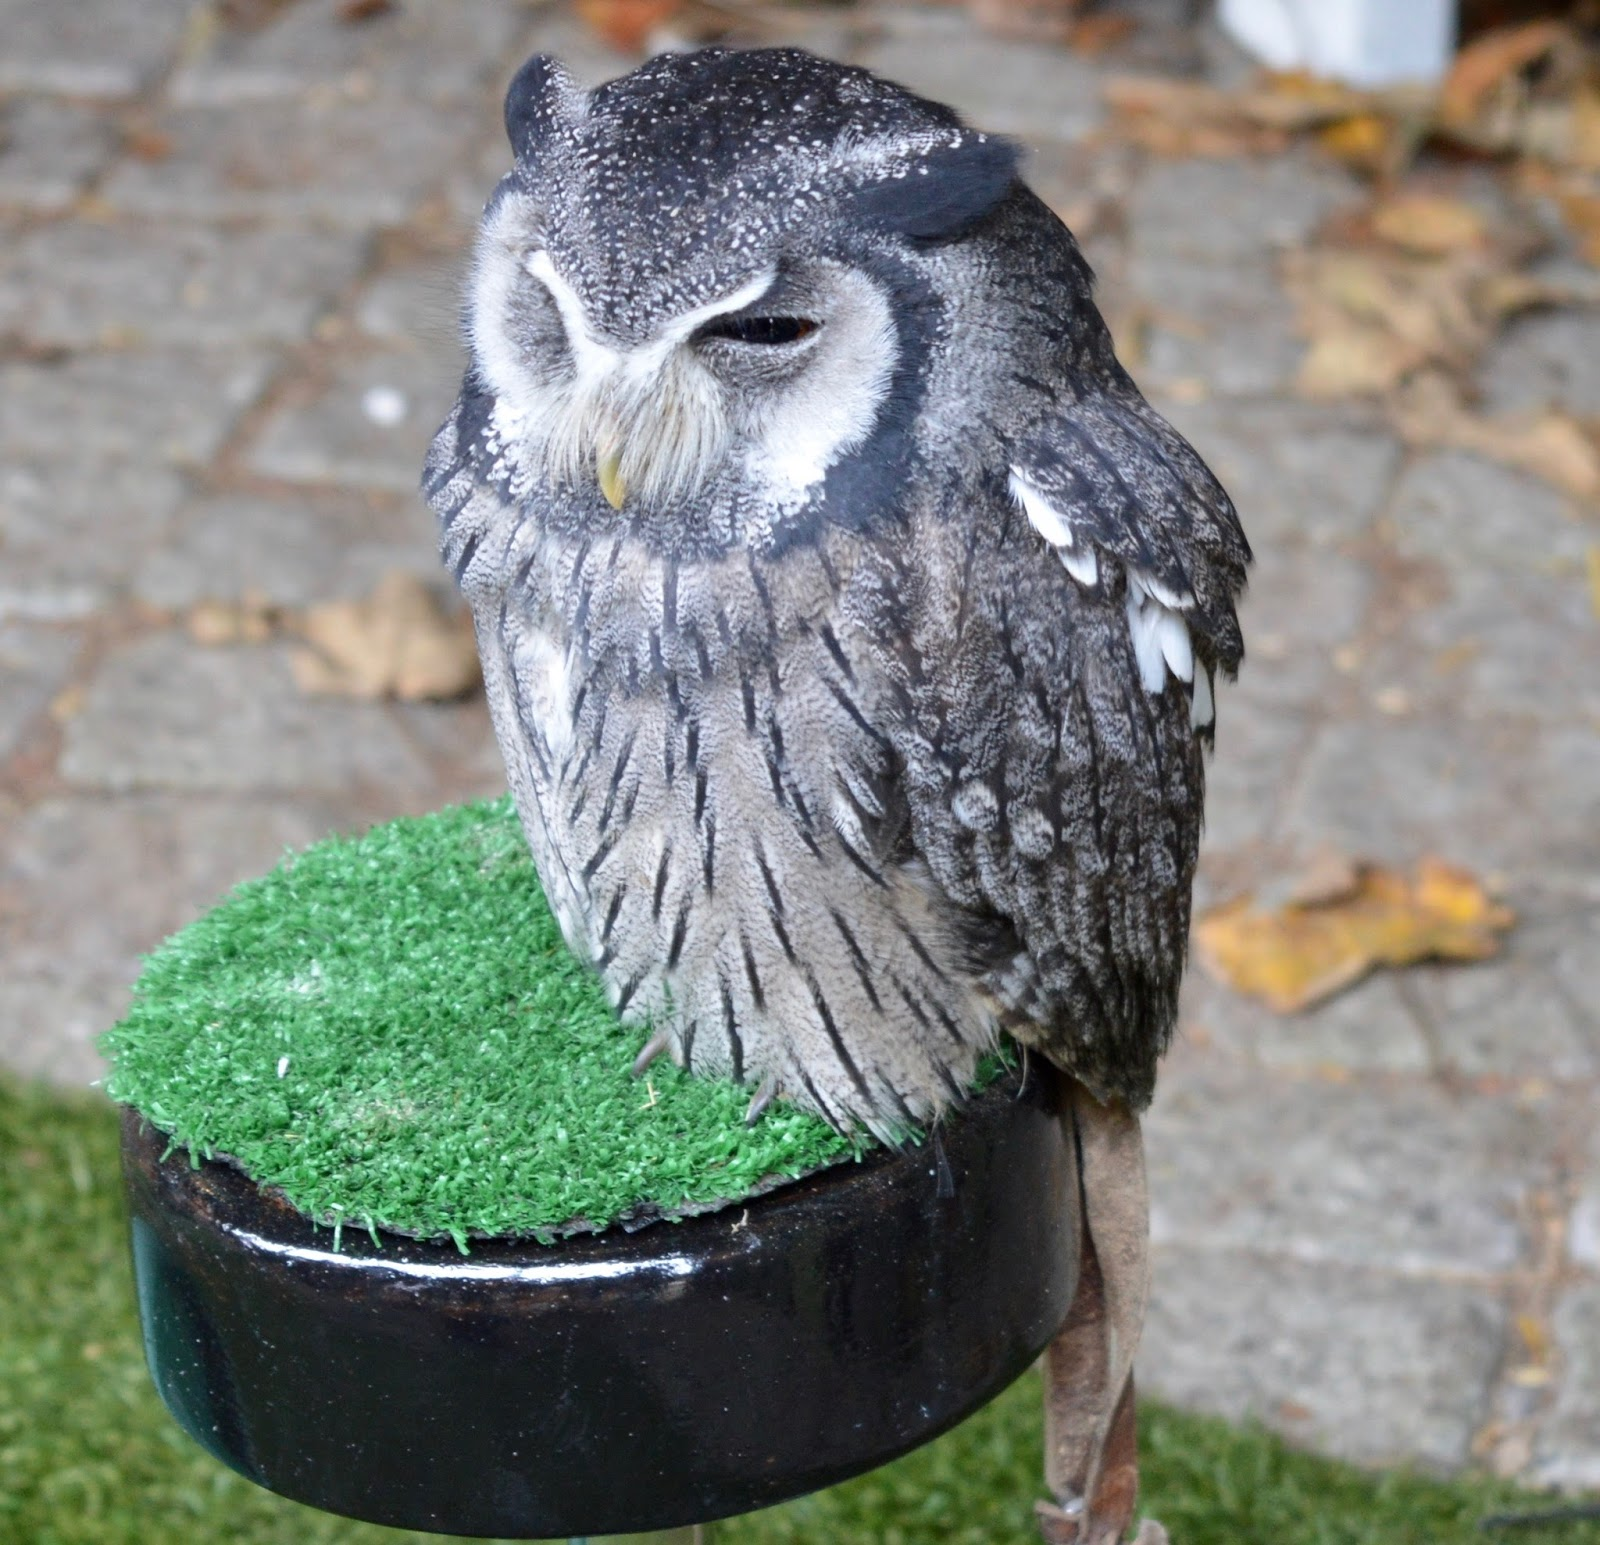 Half Term Hocus Pocus at Preston Park | The North East's very own Diagon Alley - real owl